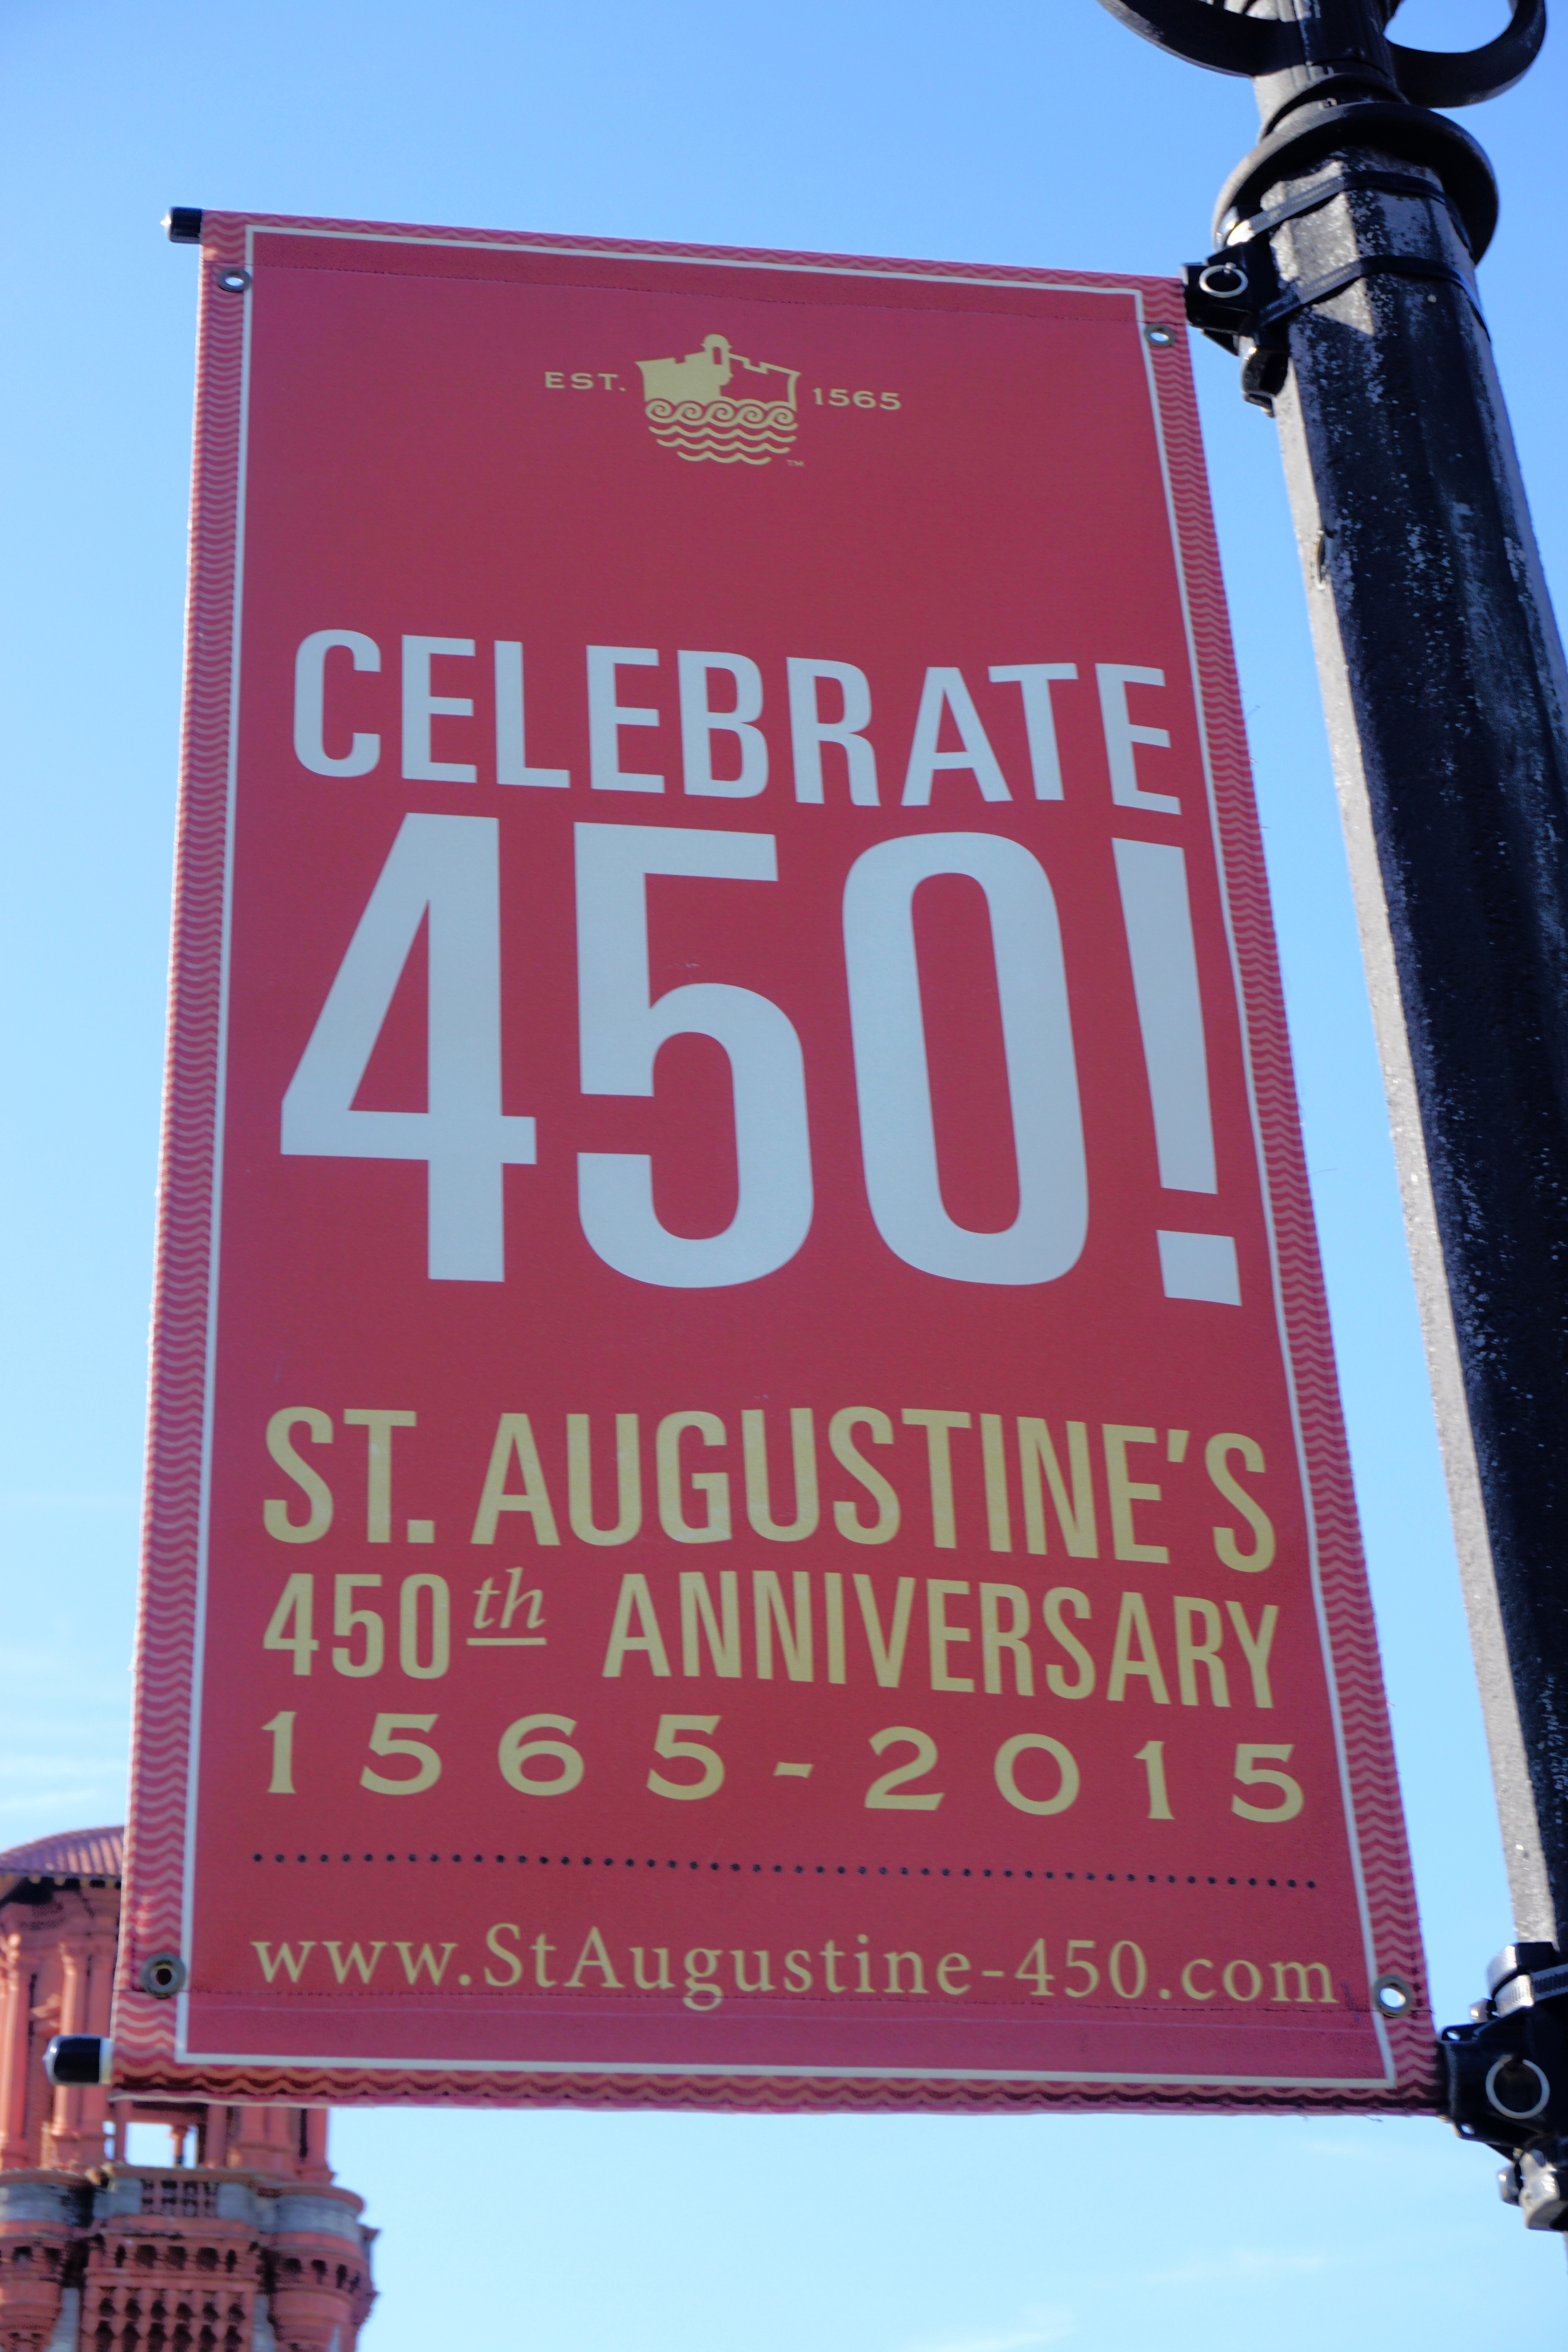 Celebrate 450! banner in St. Augustine, Florida. Photo by Daniel Ward.